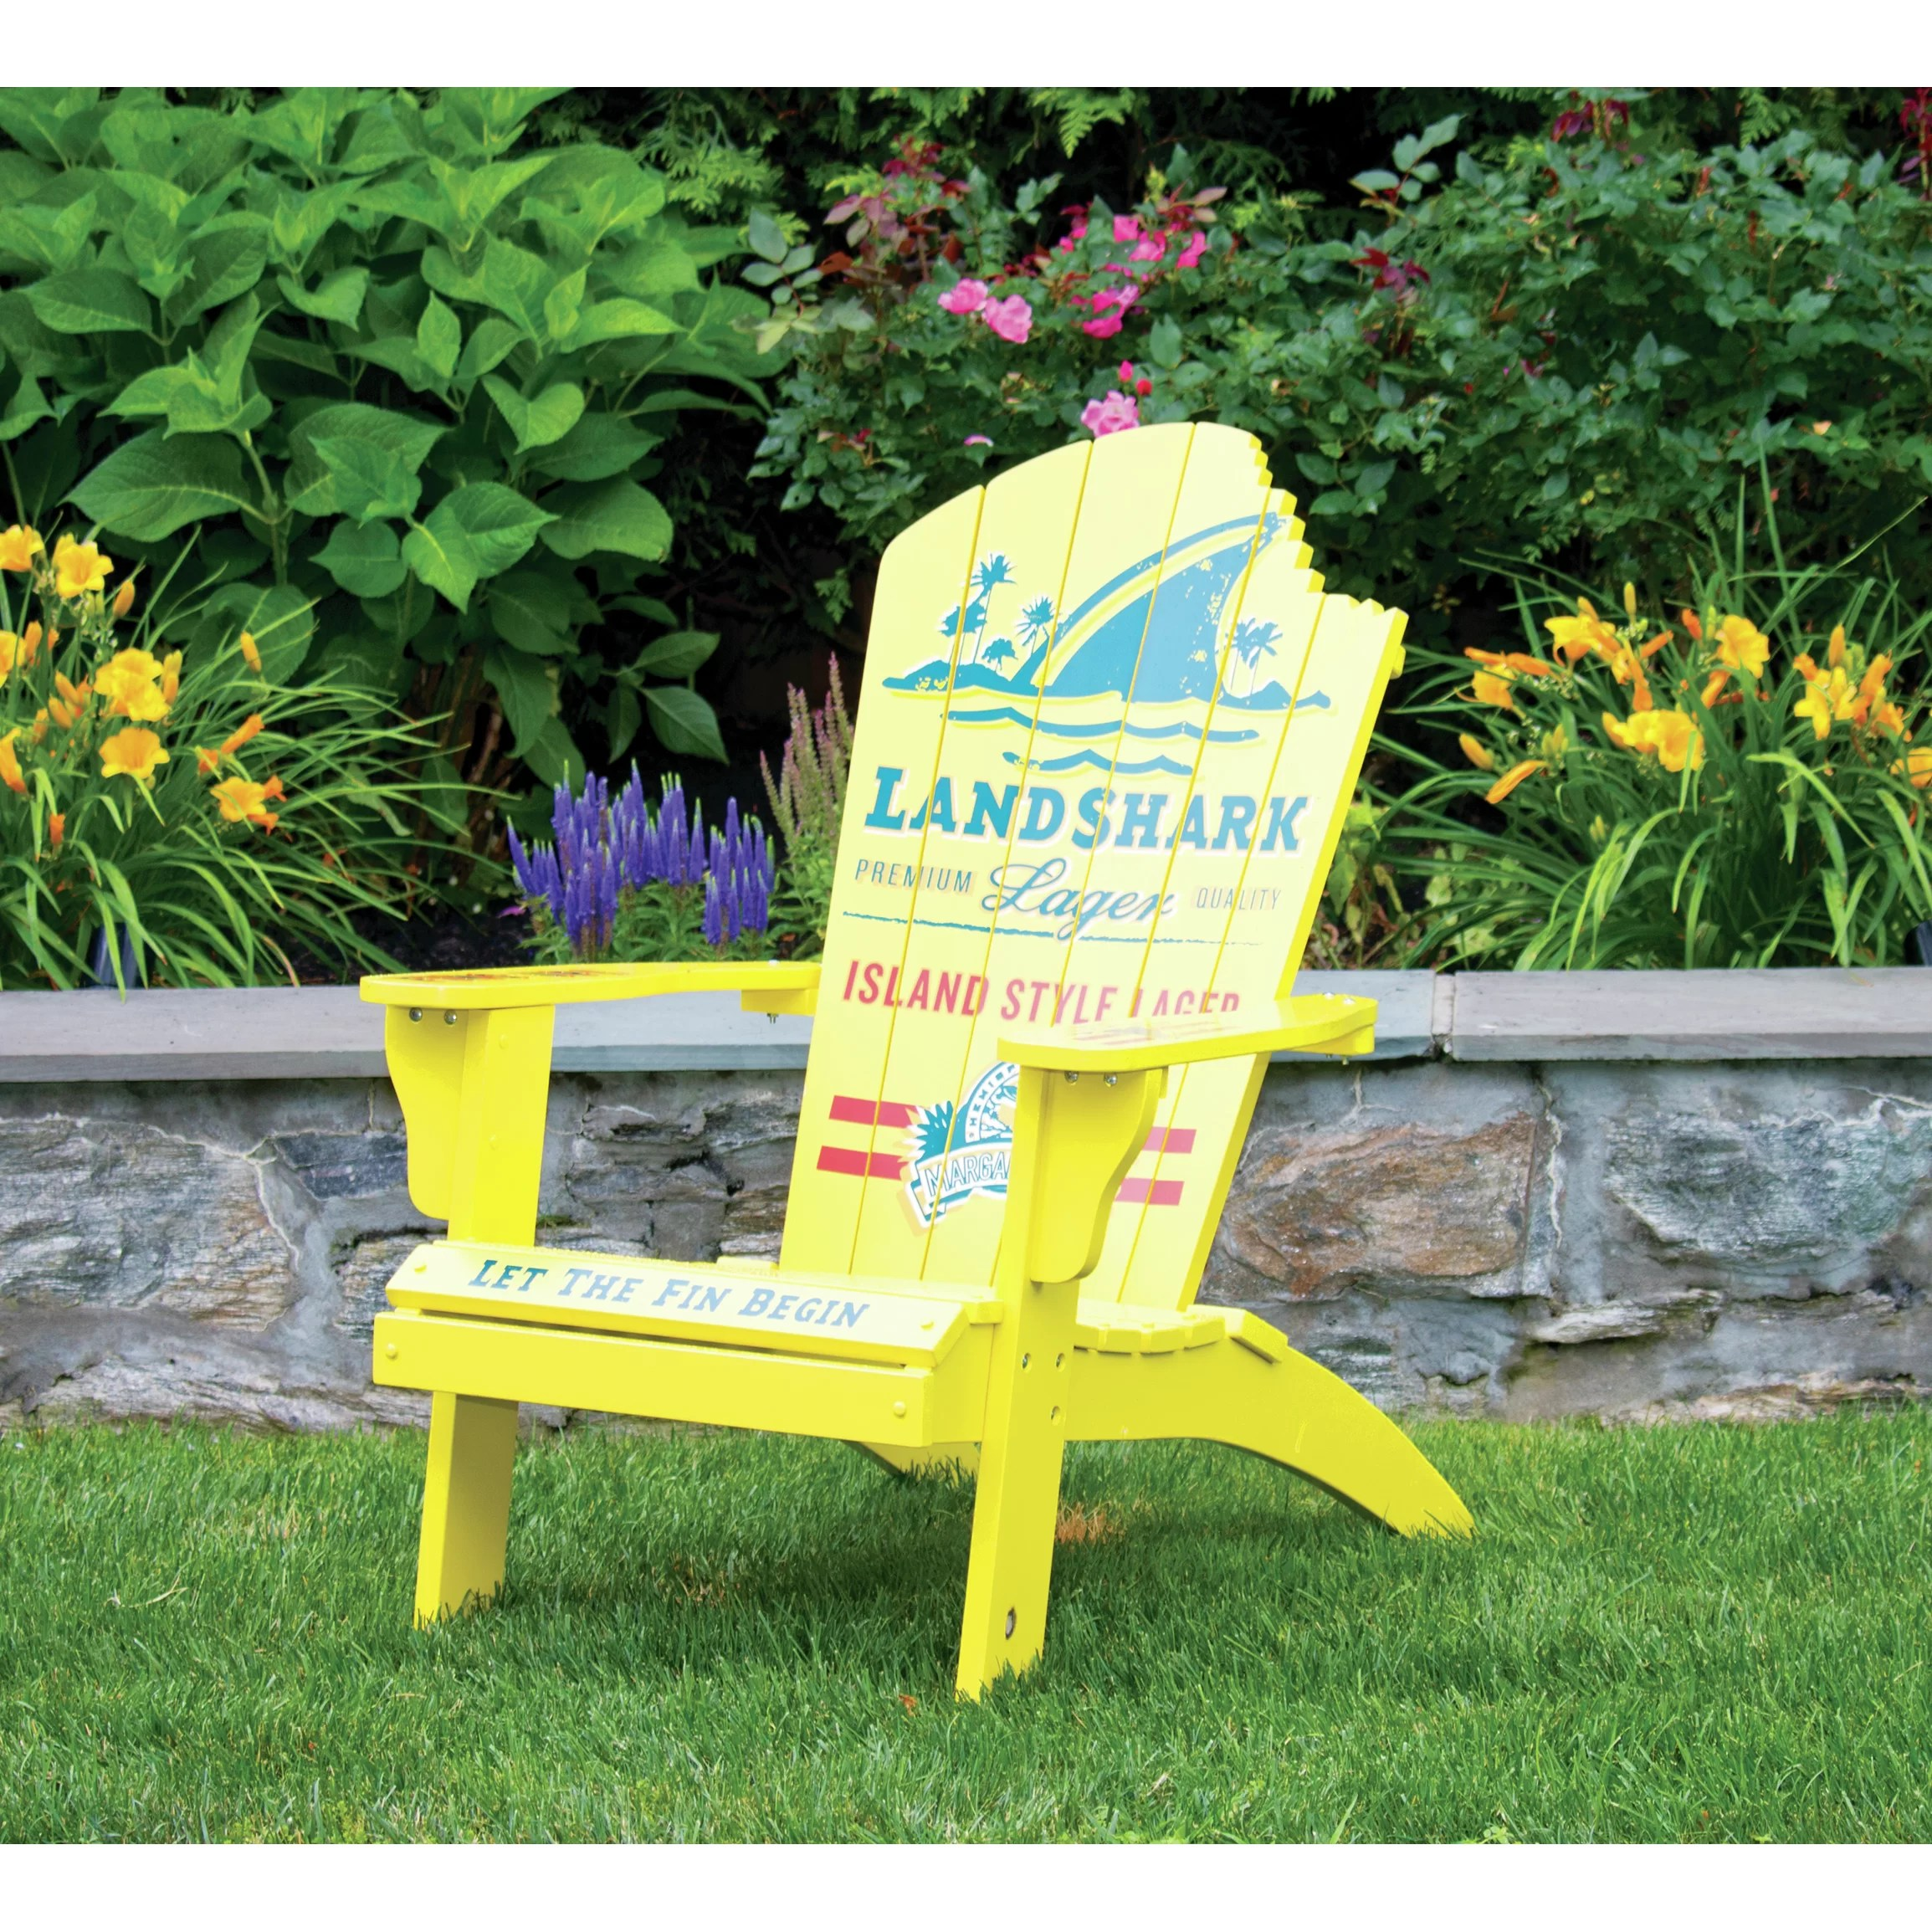 margaritaville chairs for sale elmo chair walmart quotlandshark quot adirondack and reviews